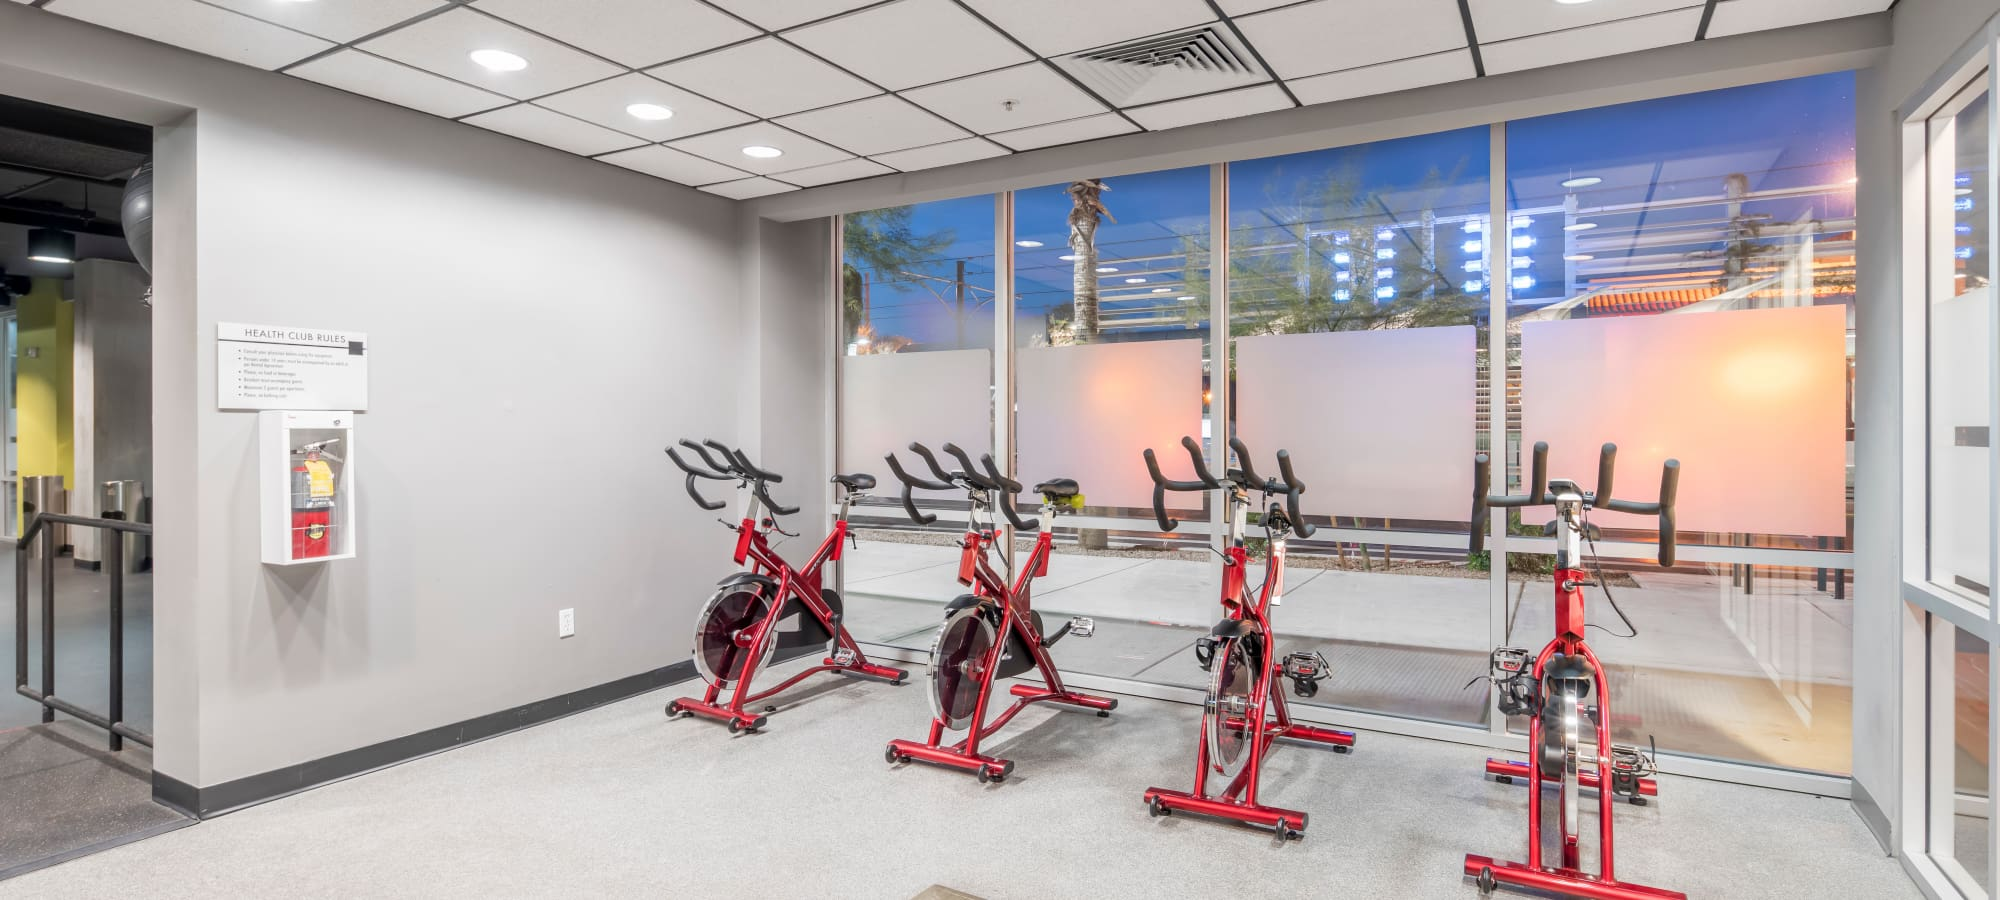 Fitness room with spin bikes at Tempe Metro in Tempe, Arizona